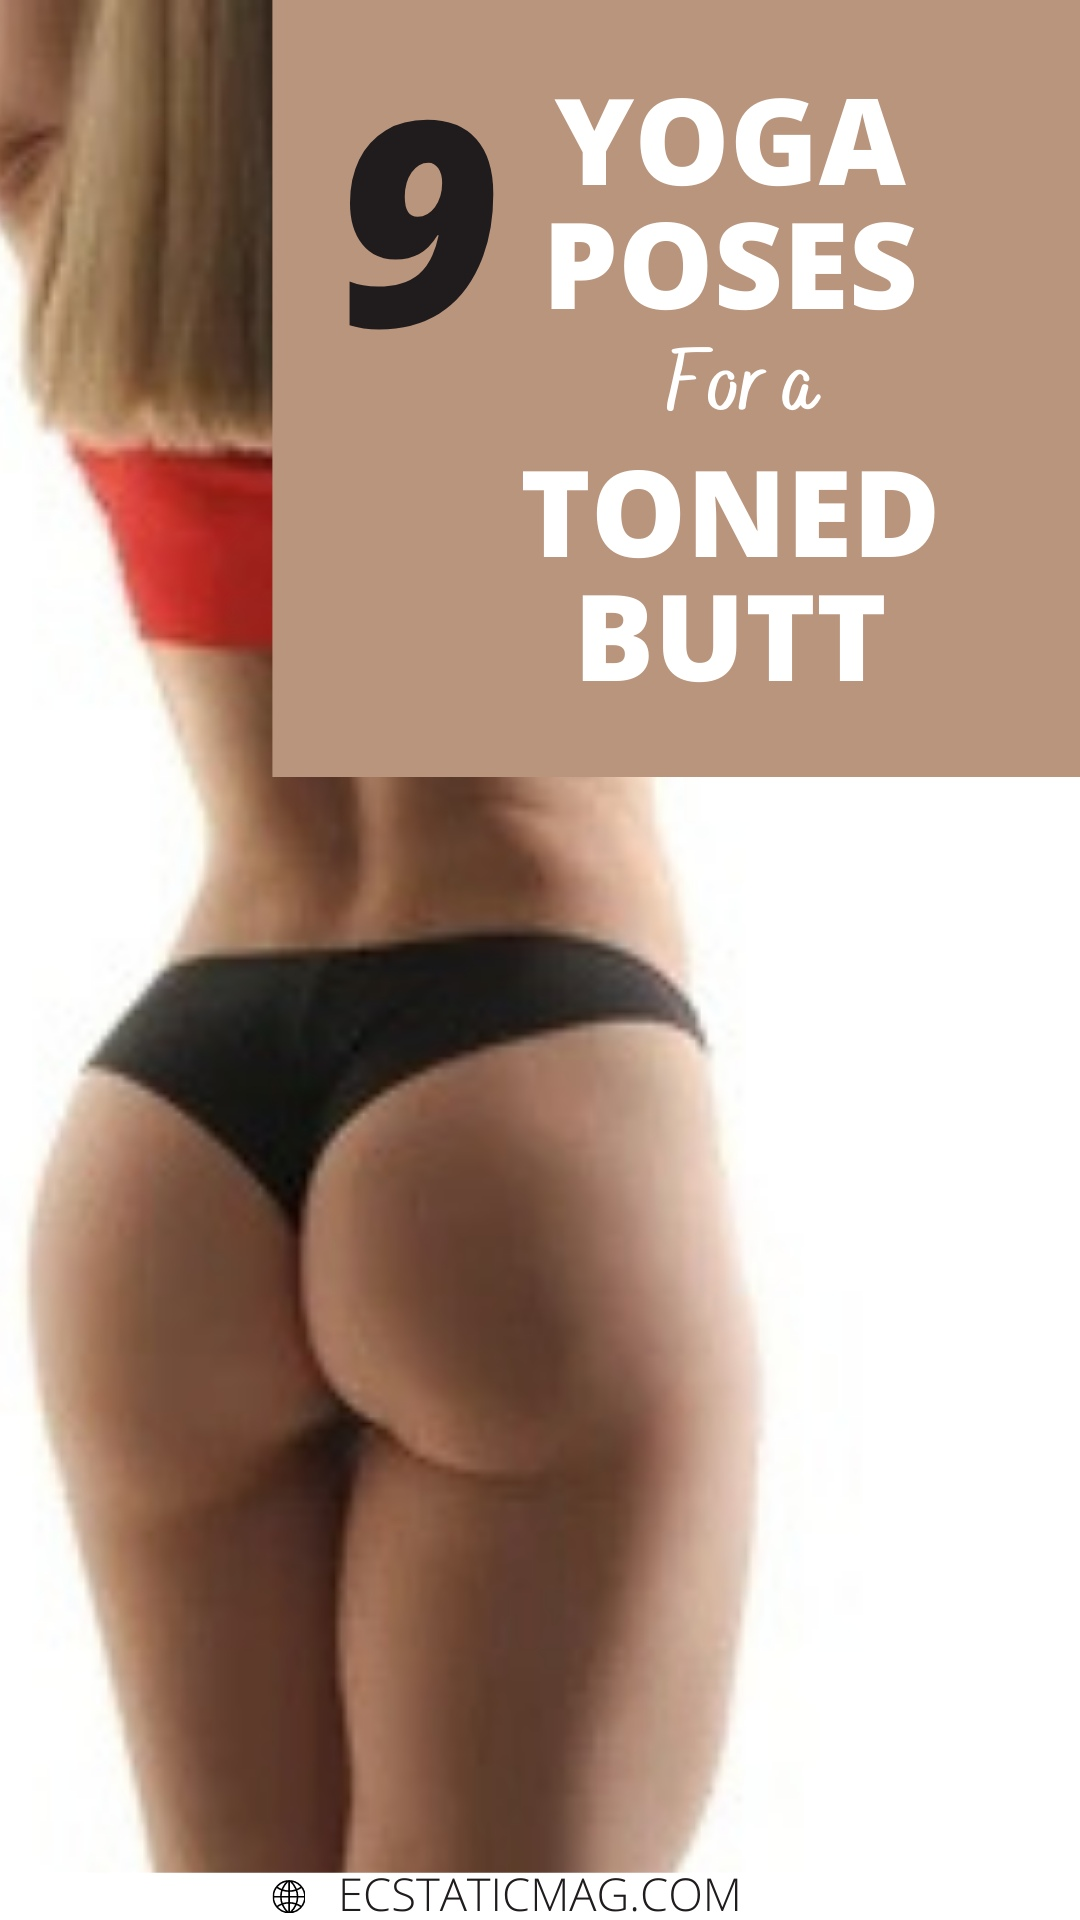 Yoga Booty Poses for a Toned Butt